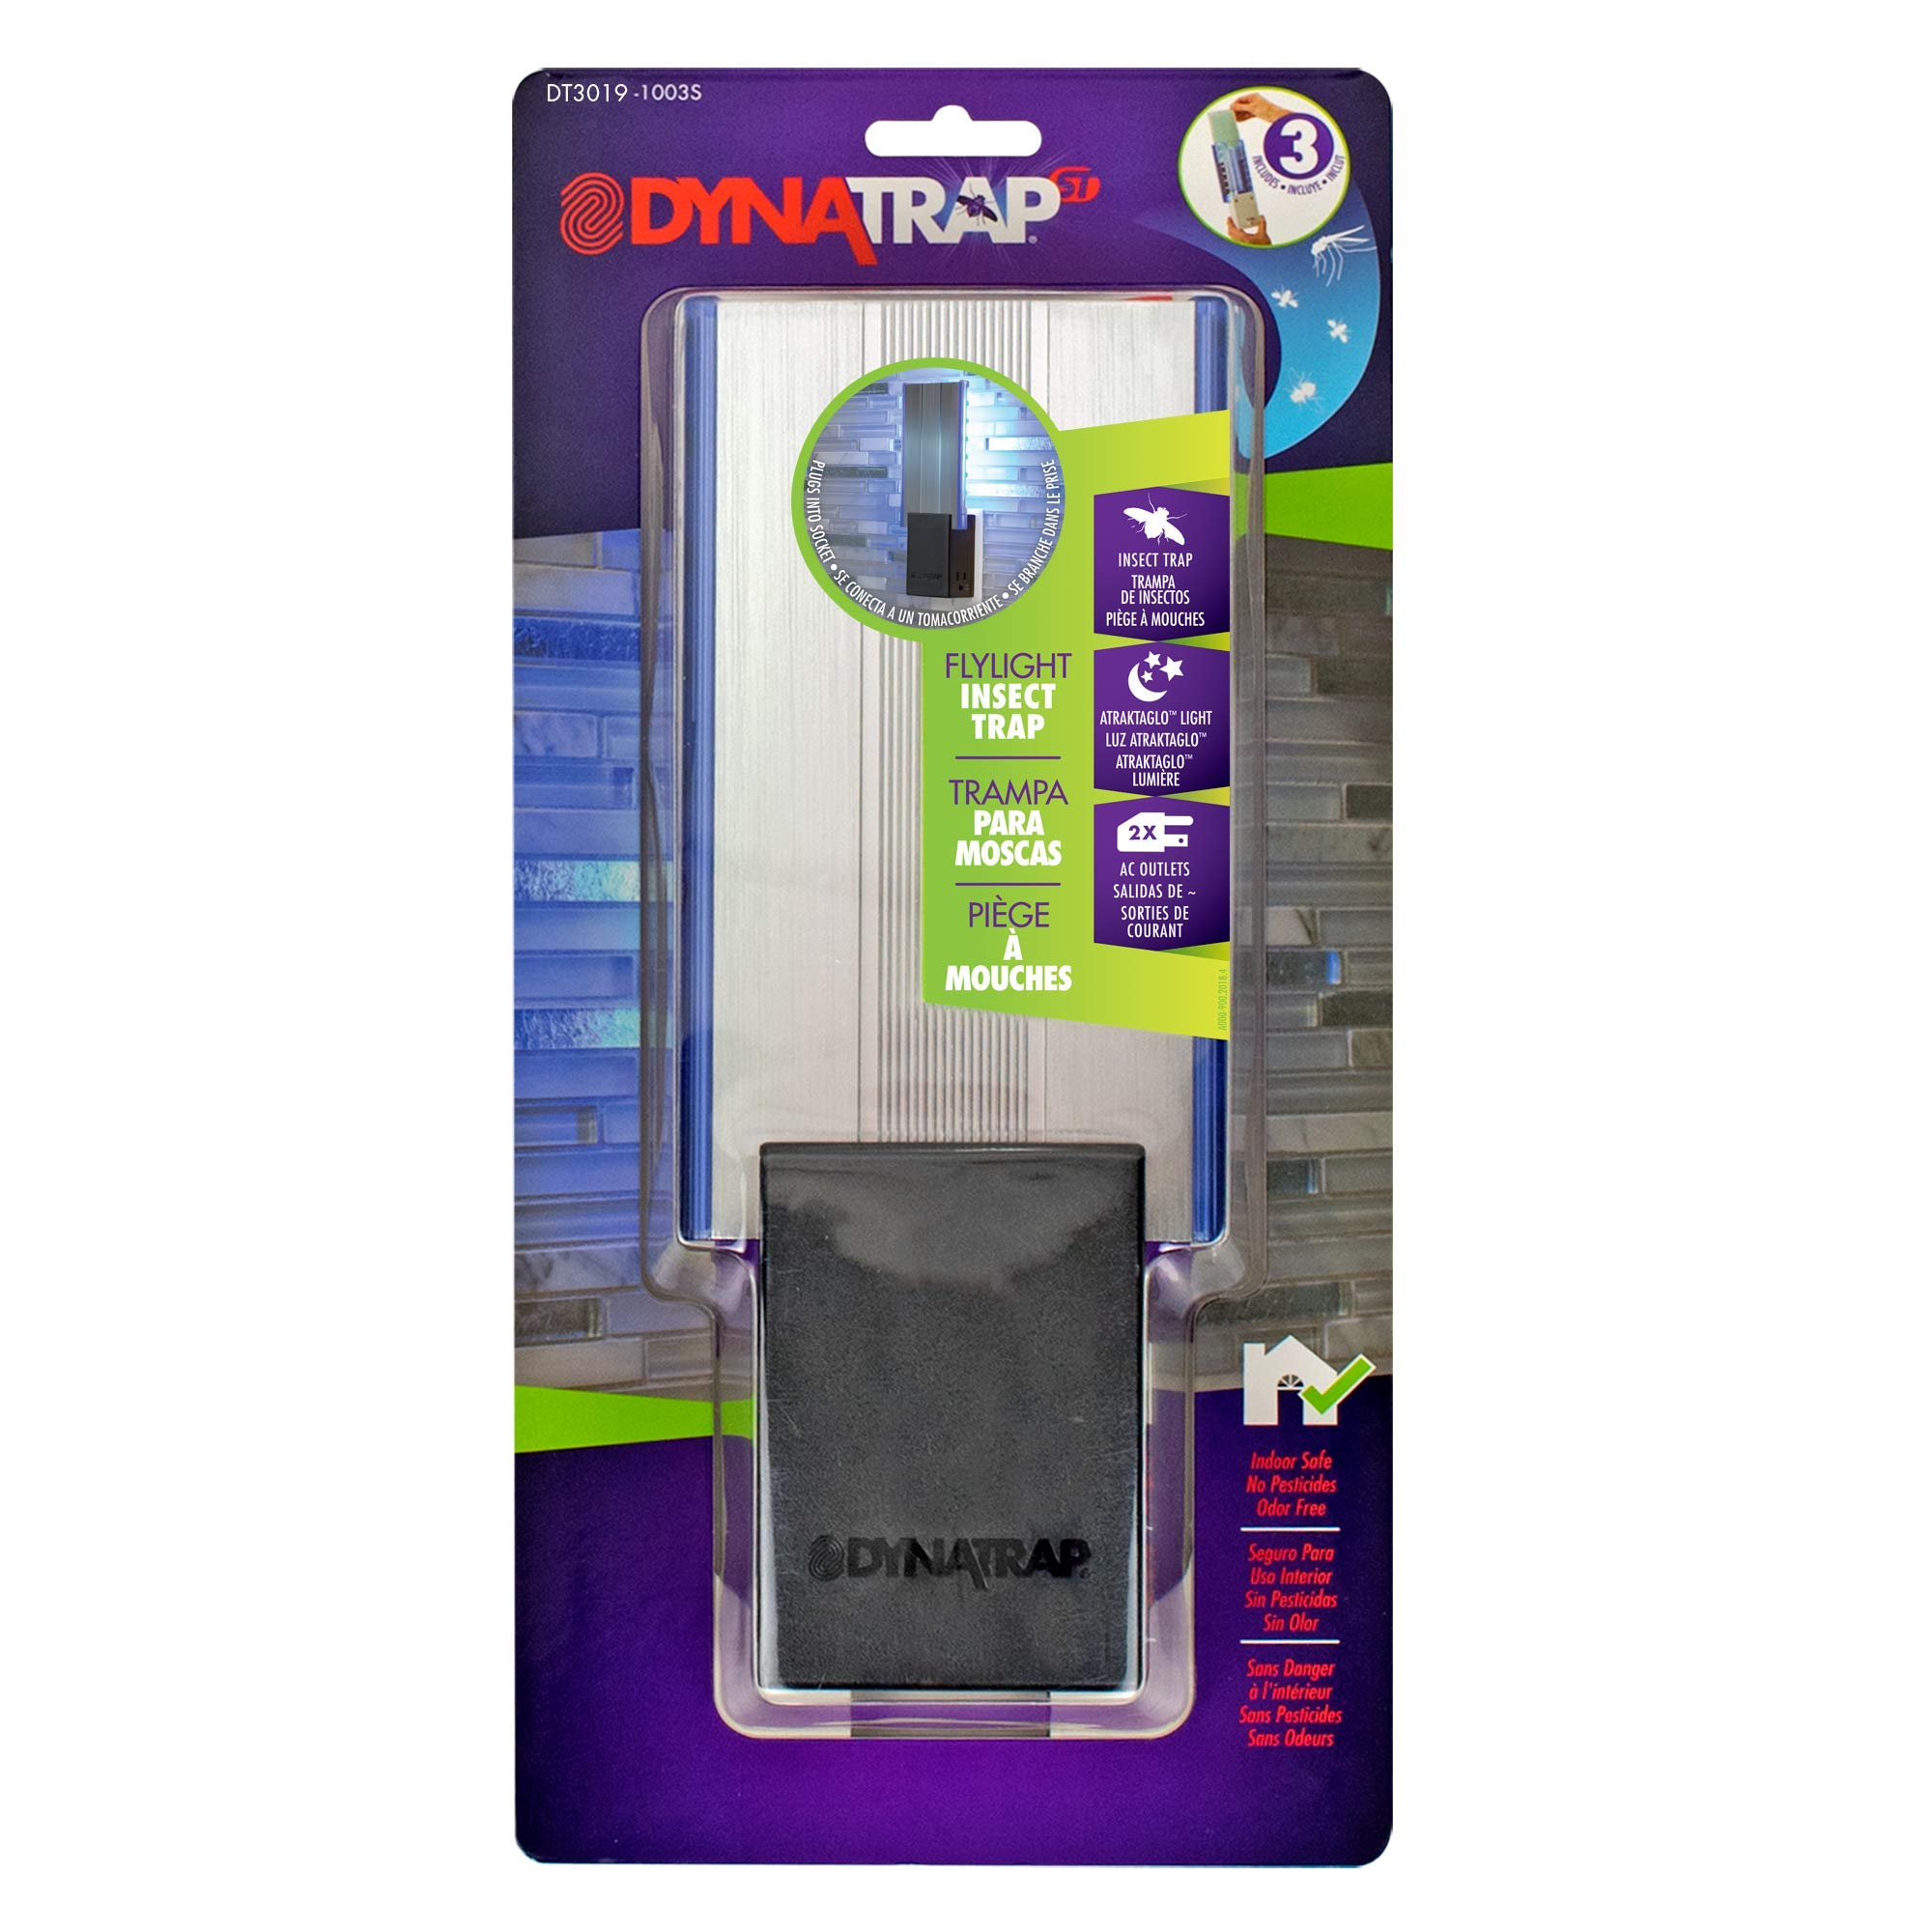 DT3019 - Flylight Insect Trap w/AC Outlets